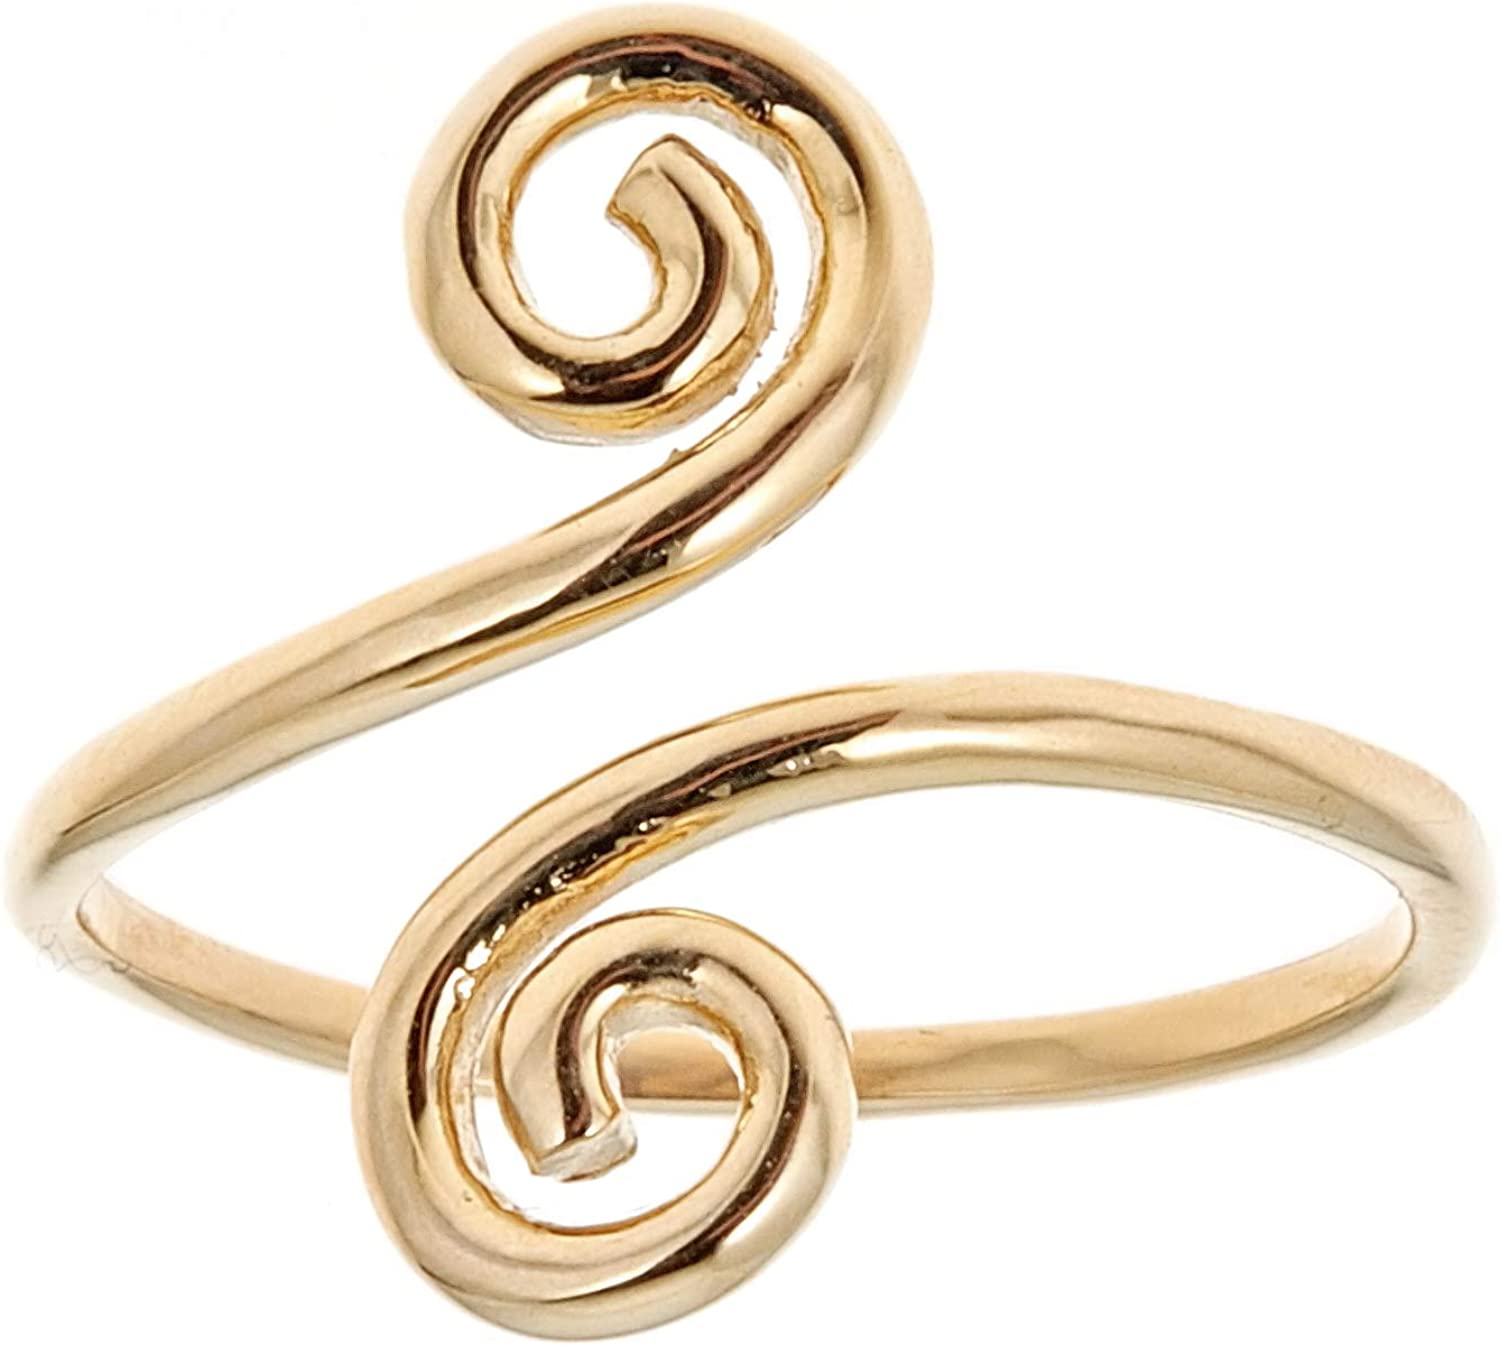 Ritastephens 14k Solid Gold Swirl Adjustable Ring or Toe Ring (Yellow or White)